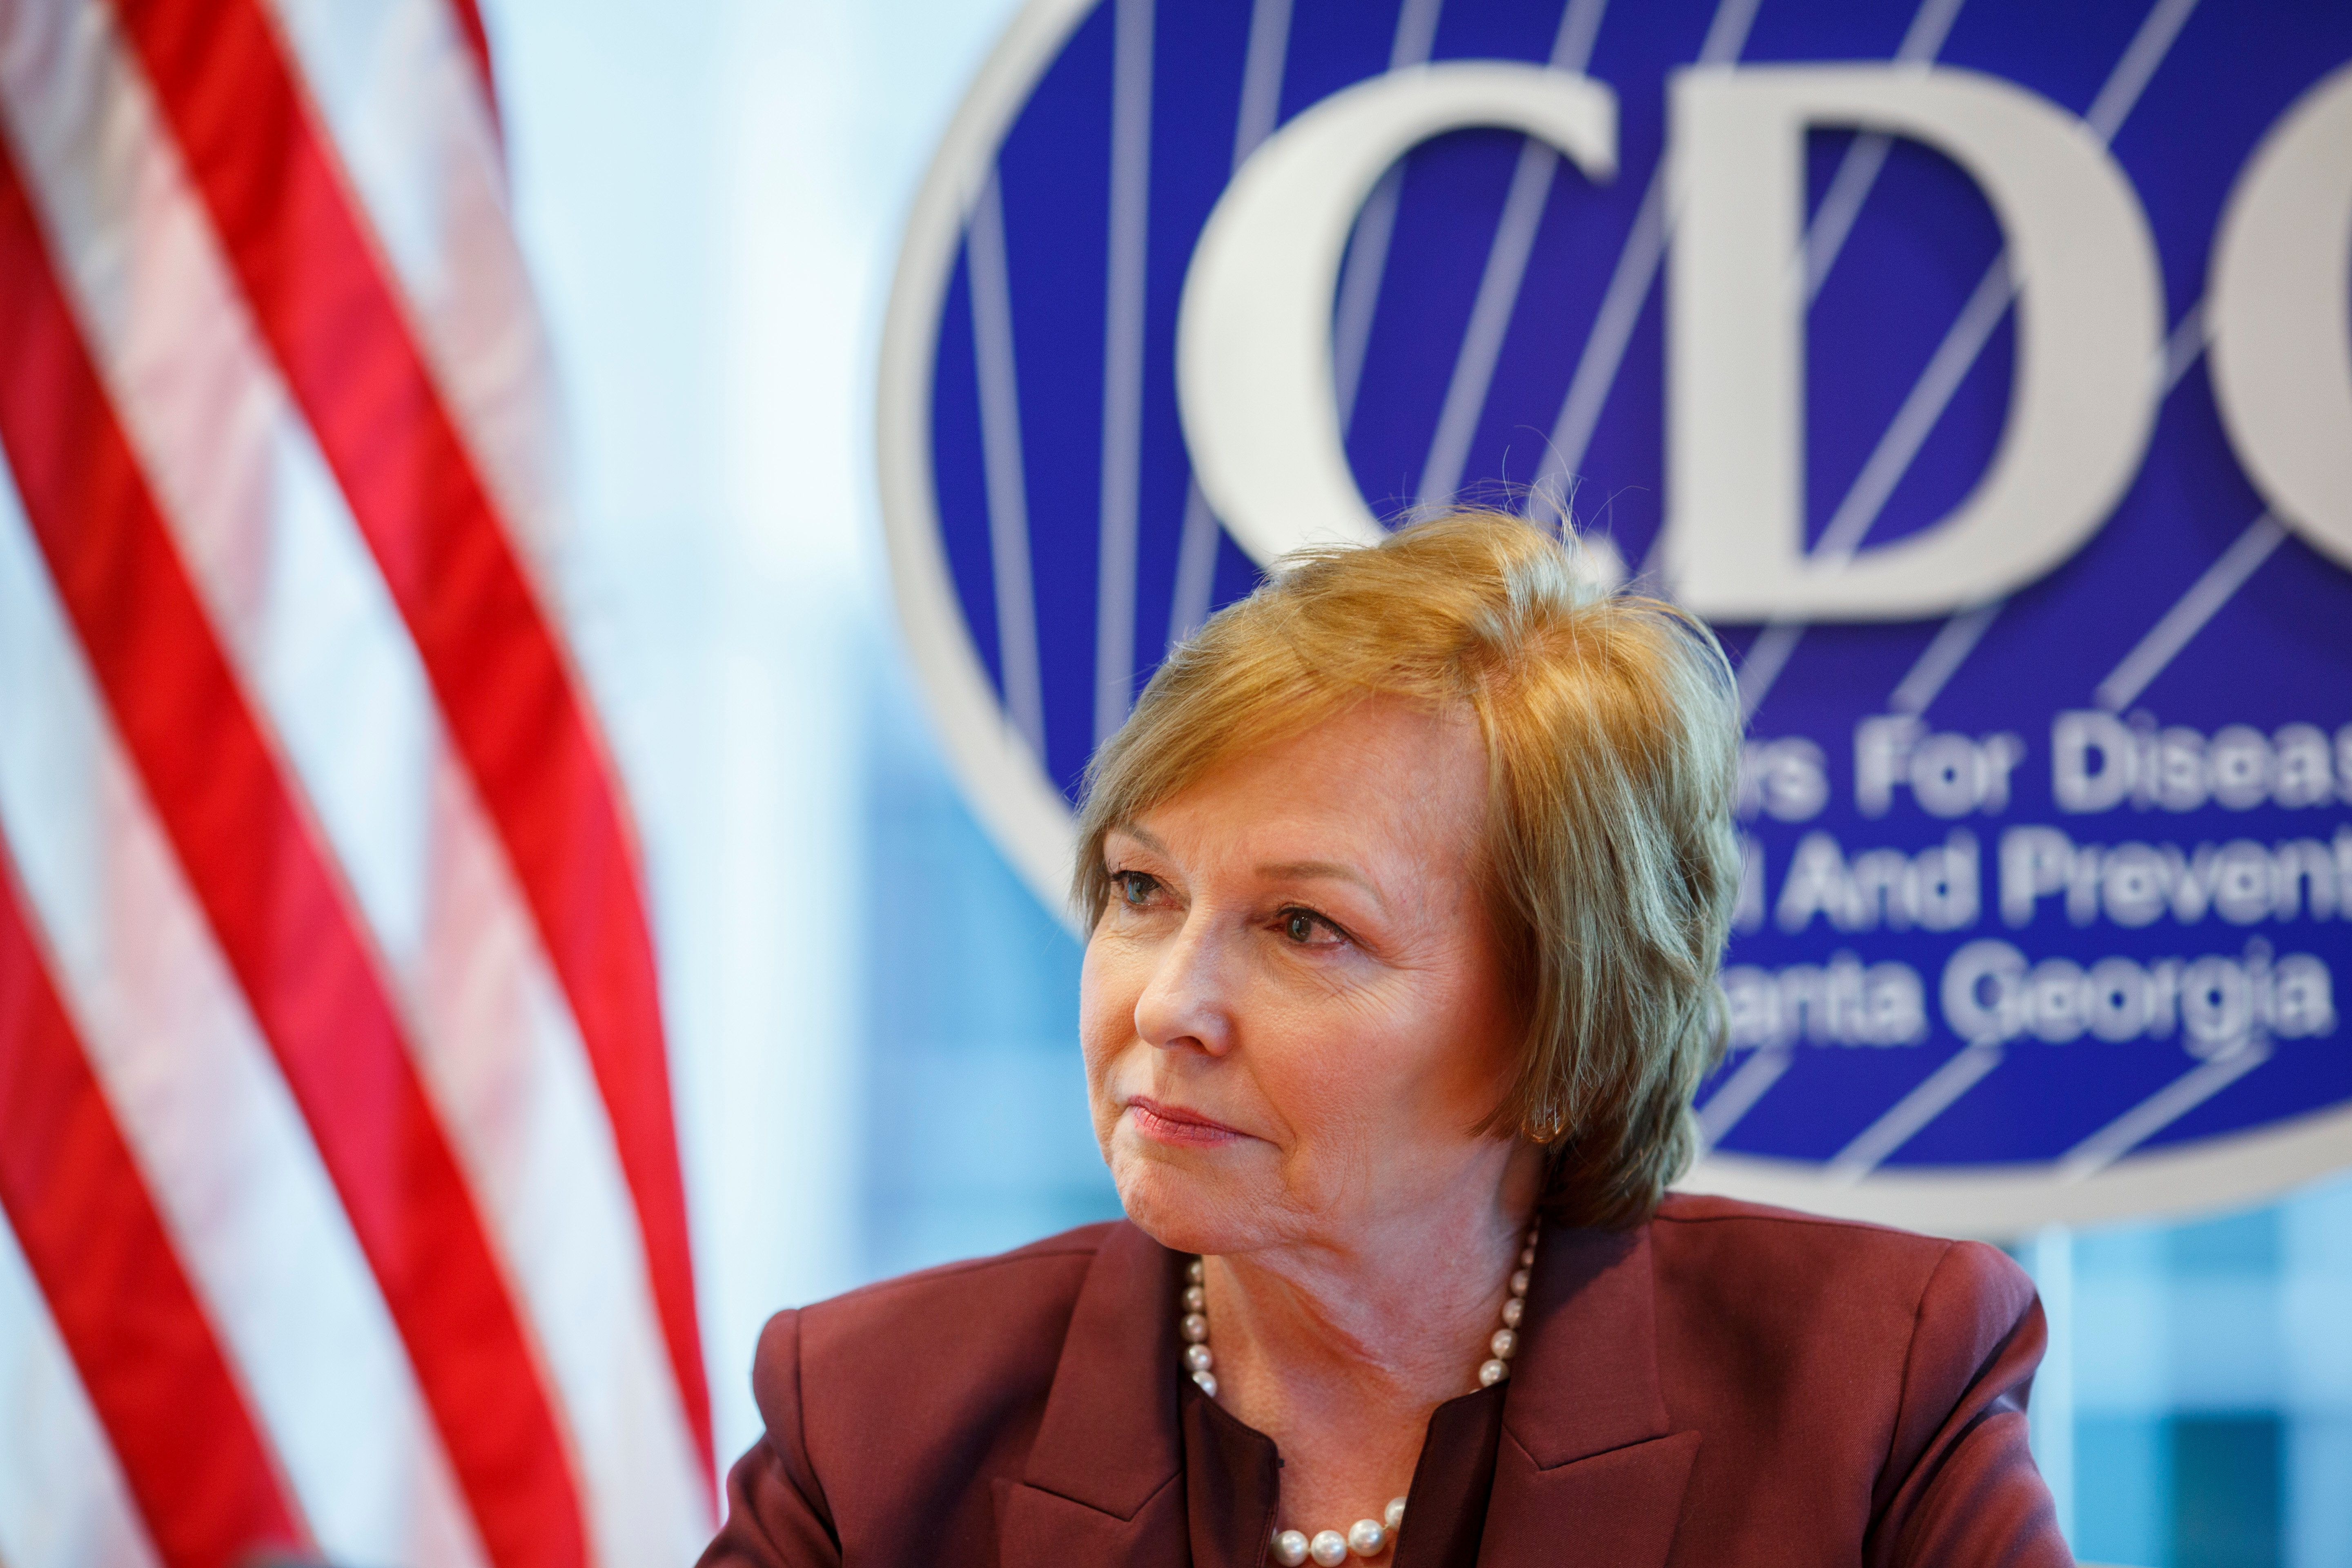 ATLANTA, GA - DECEMBER, 5: Centers for Disease Control and Prevention Director Dr. Brenda Fitzgerald is photographed at the agency's headquarters in Atlanta, GA on Tuesday, December 5, 2017. (Photo by Melissa Golden for The Washington Post via Getty Images)